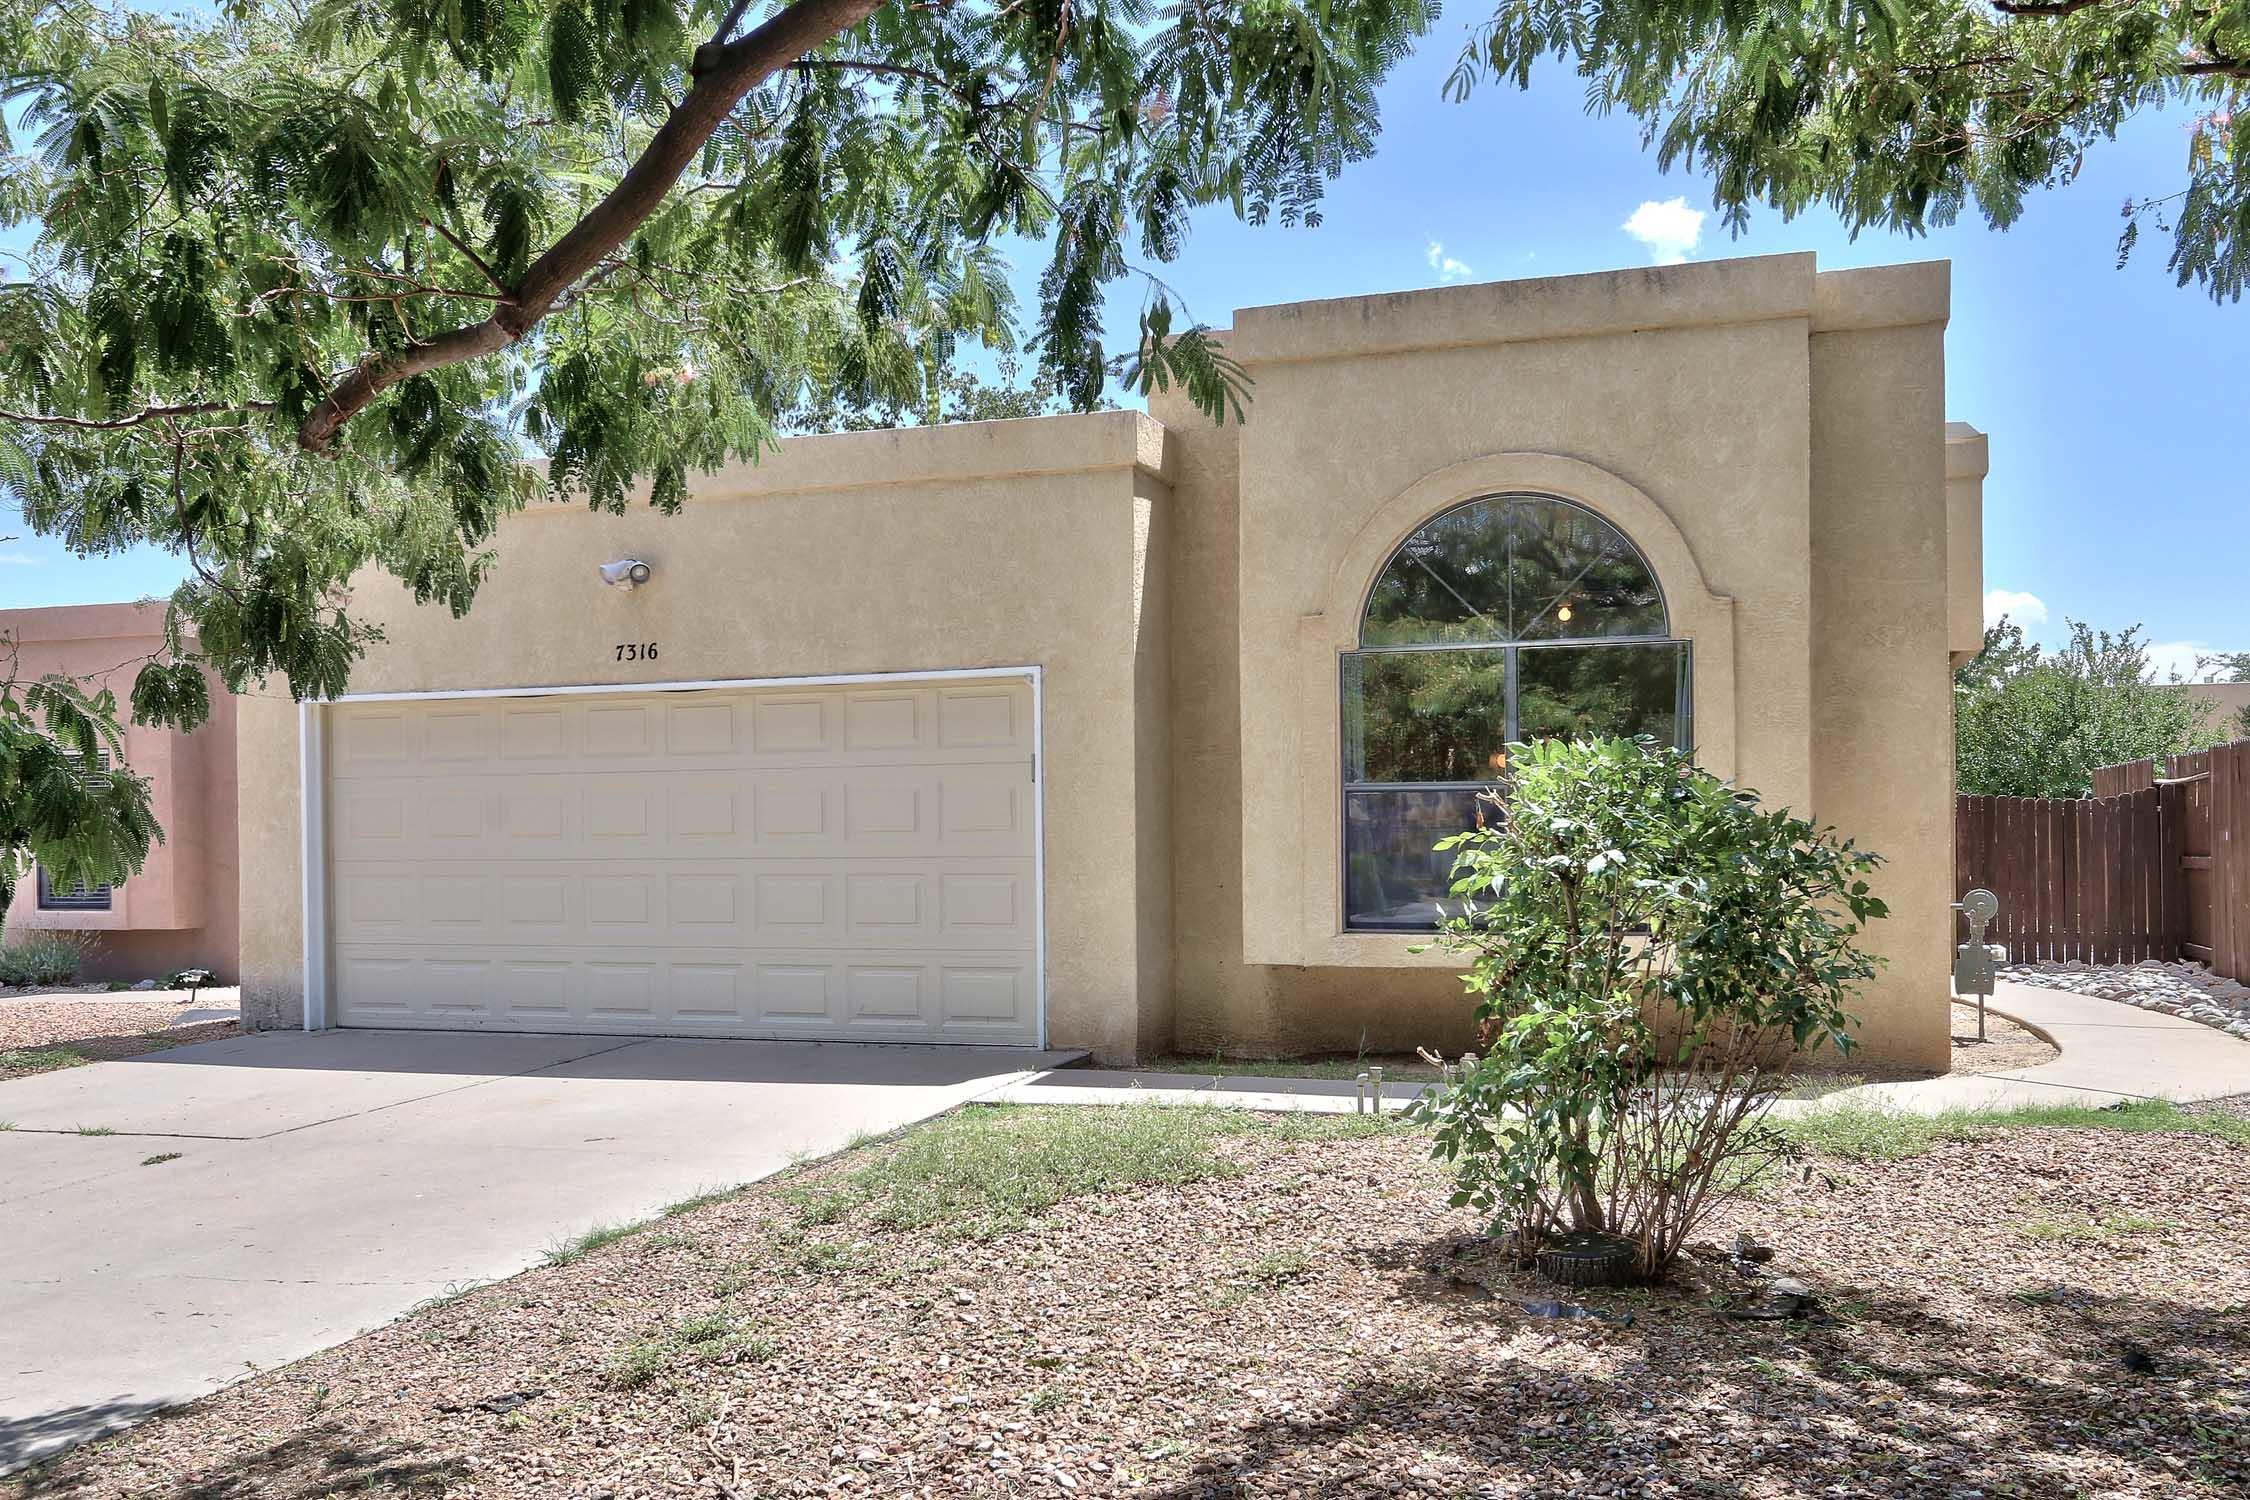 Charming 3-bedroom starter home on a quiet street in Ladera Heights, ideally located with easy access to I-40, shopping and restaurants, and even a dog park! Light-filled kitchen with ample eat-in dining area features gas stove and sliding glass doors to outside private yard, perfect for entertaining. Large master bedroom has full attached bath. Living areas are light-filled and cheery.  Lovely backyard features trees, rose bushes and large storage shed. 2-car drive-through garage is ideal for car lovers and mechanics. Great location and setting at an affordable price!